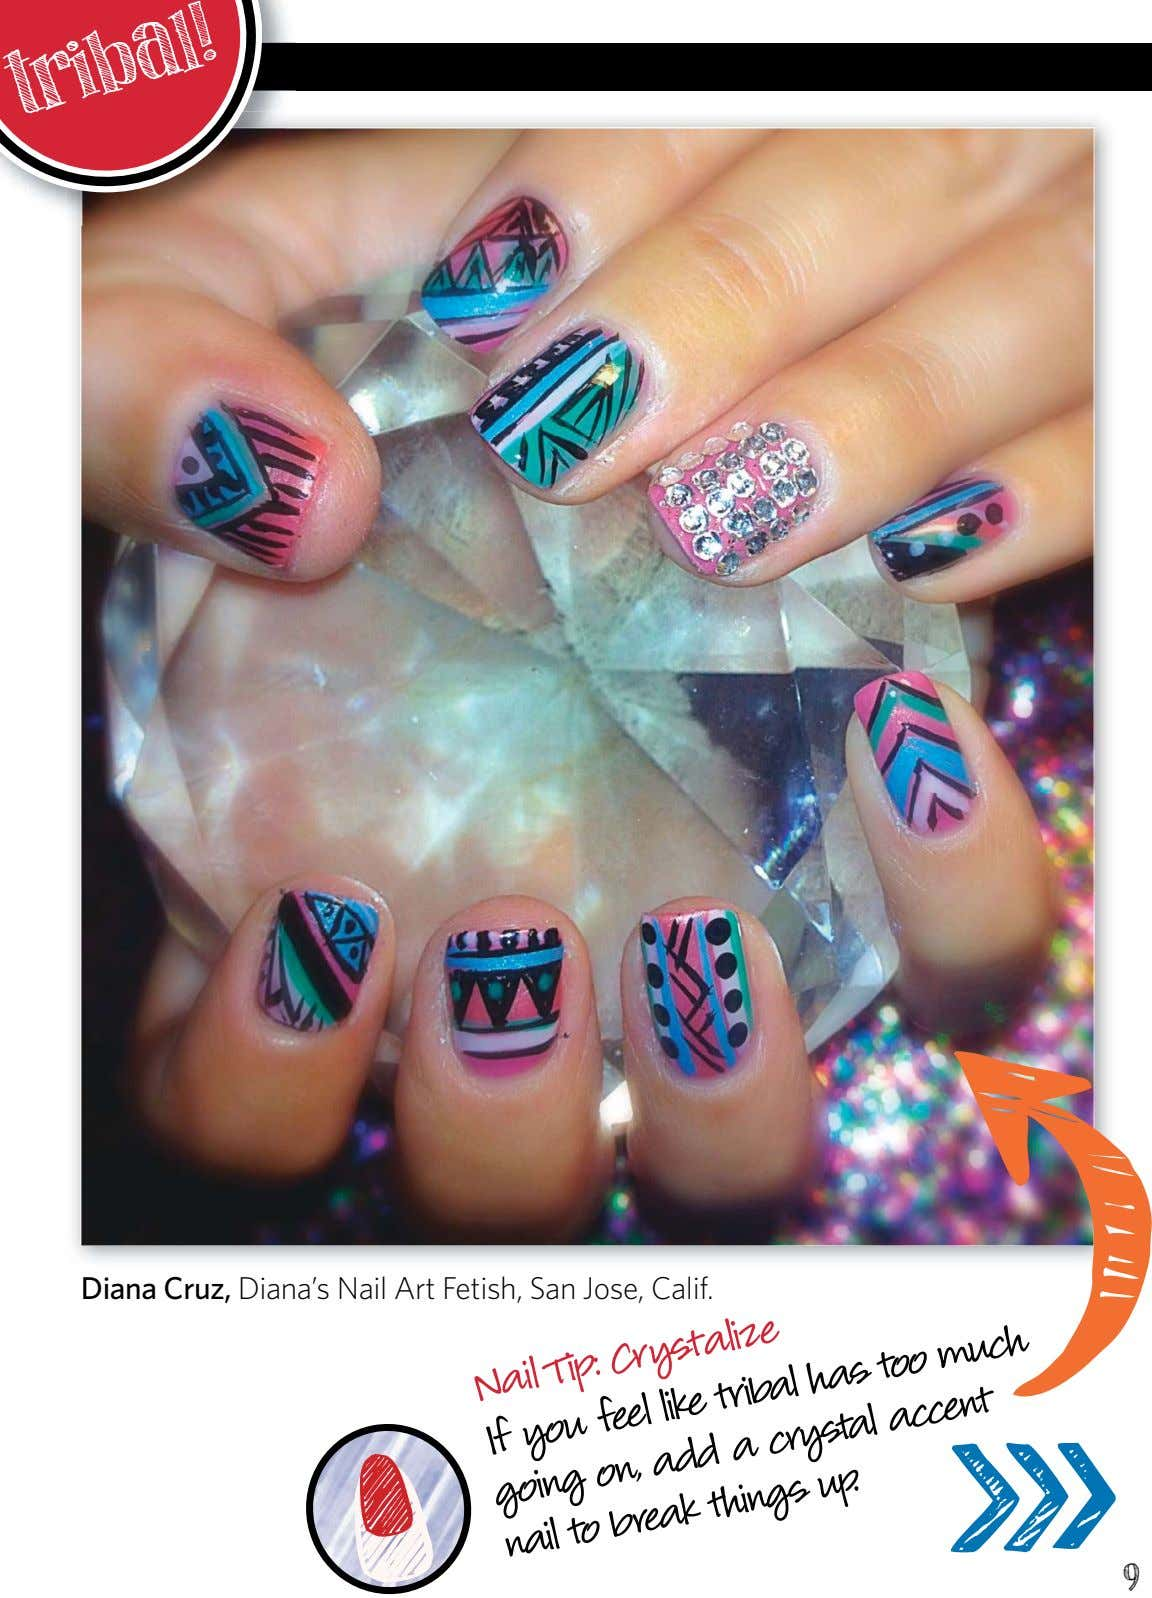 tribal! Diana Cruz, Diana's Nail Art Fetish, San Jose, Calif. Nail Tip: Crystalize too much